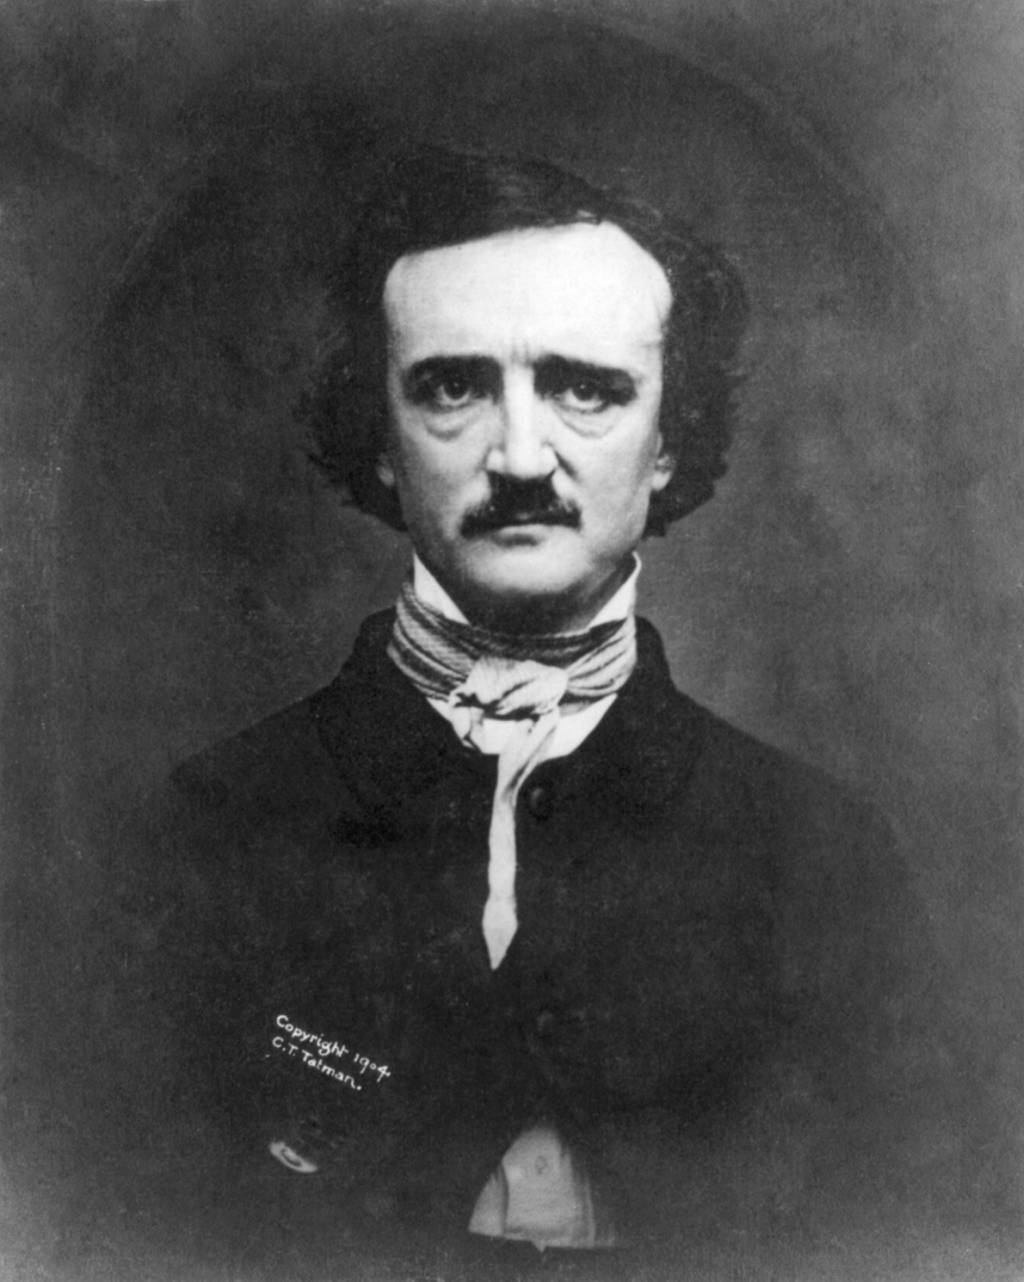 writing styles in the tell tale heart by edgary allen poe writework 1848 daguerreotype of edgar allan poe at 39 a year before his death